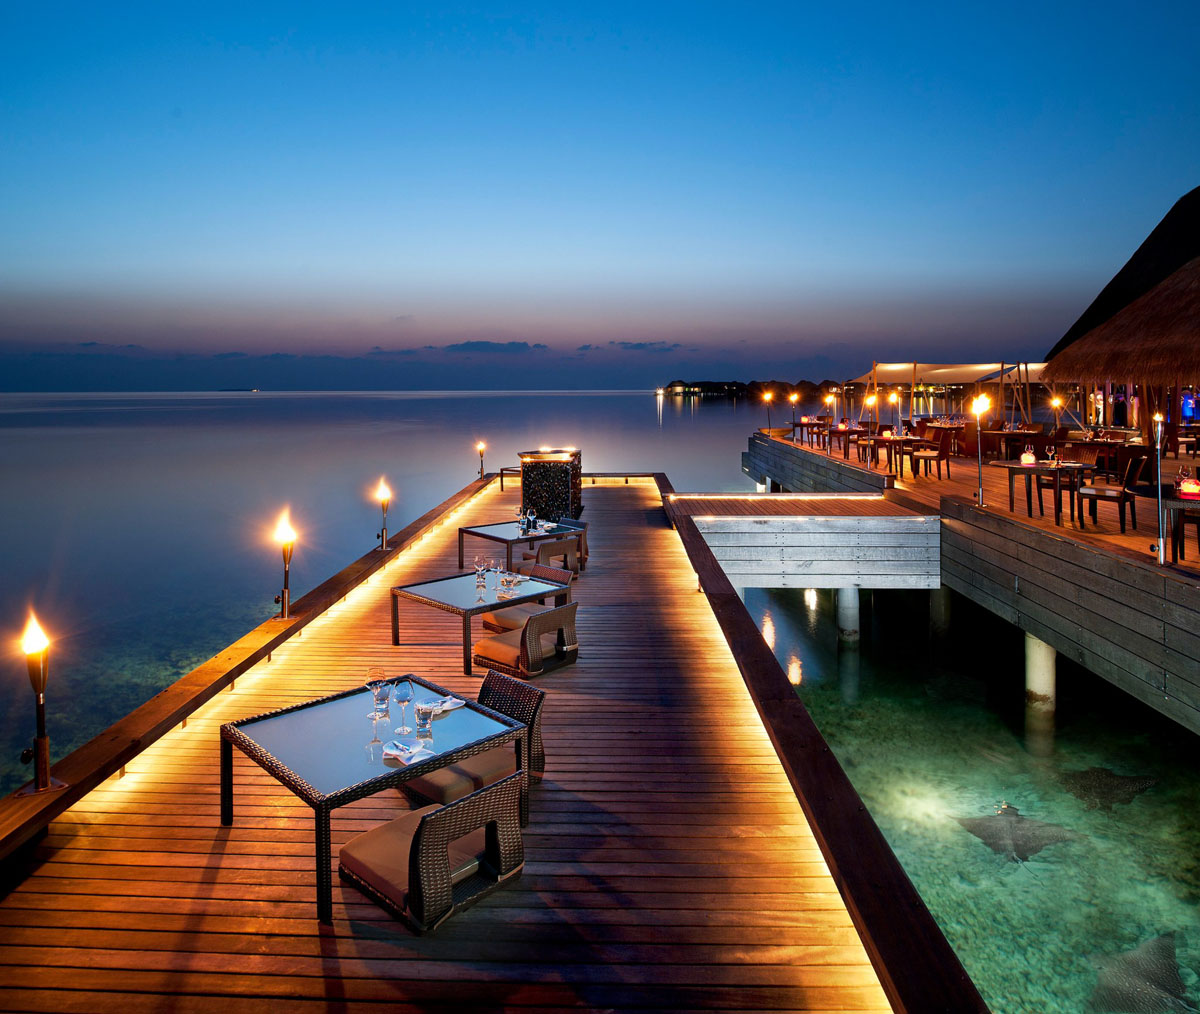 Indian Interior Design: The Exotic W Retreat & Spa Maldives With Luxury Bungalows